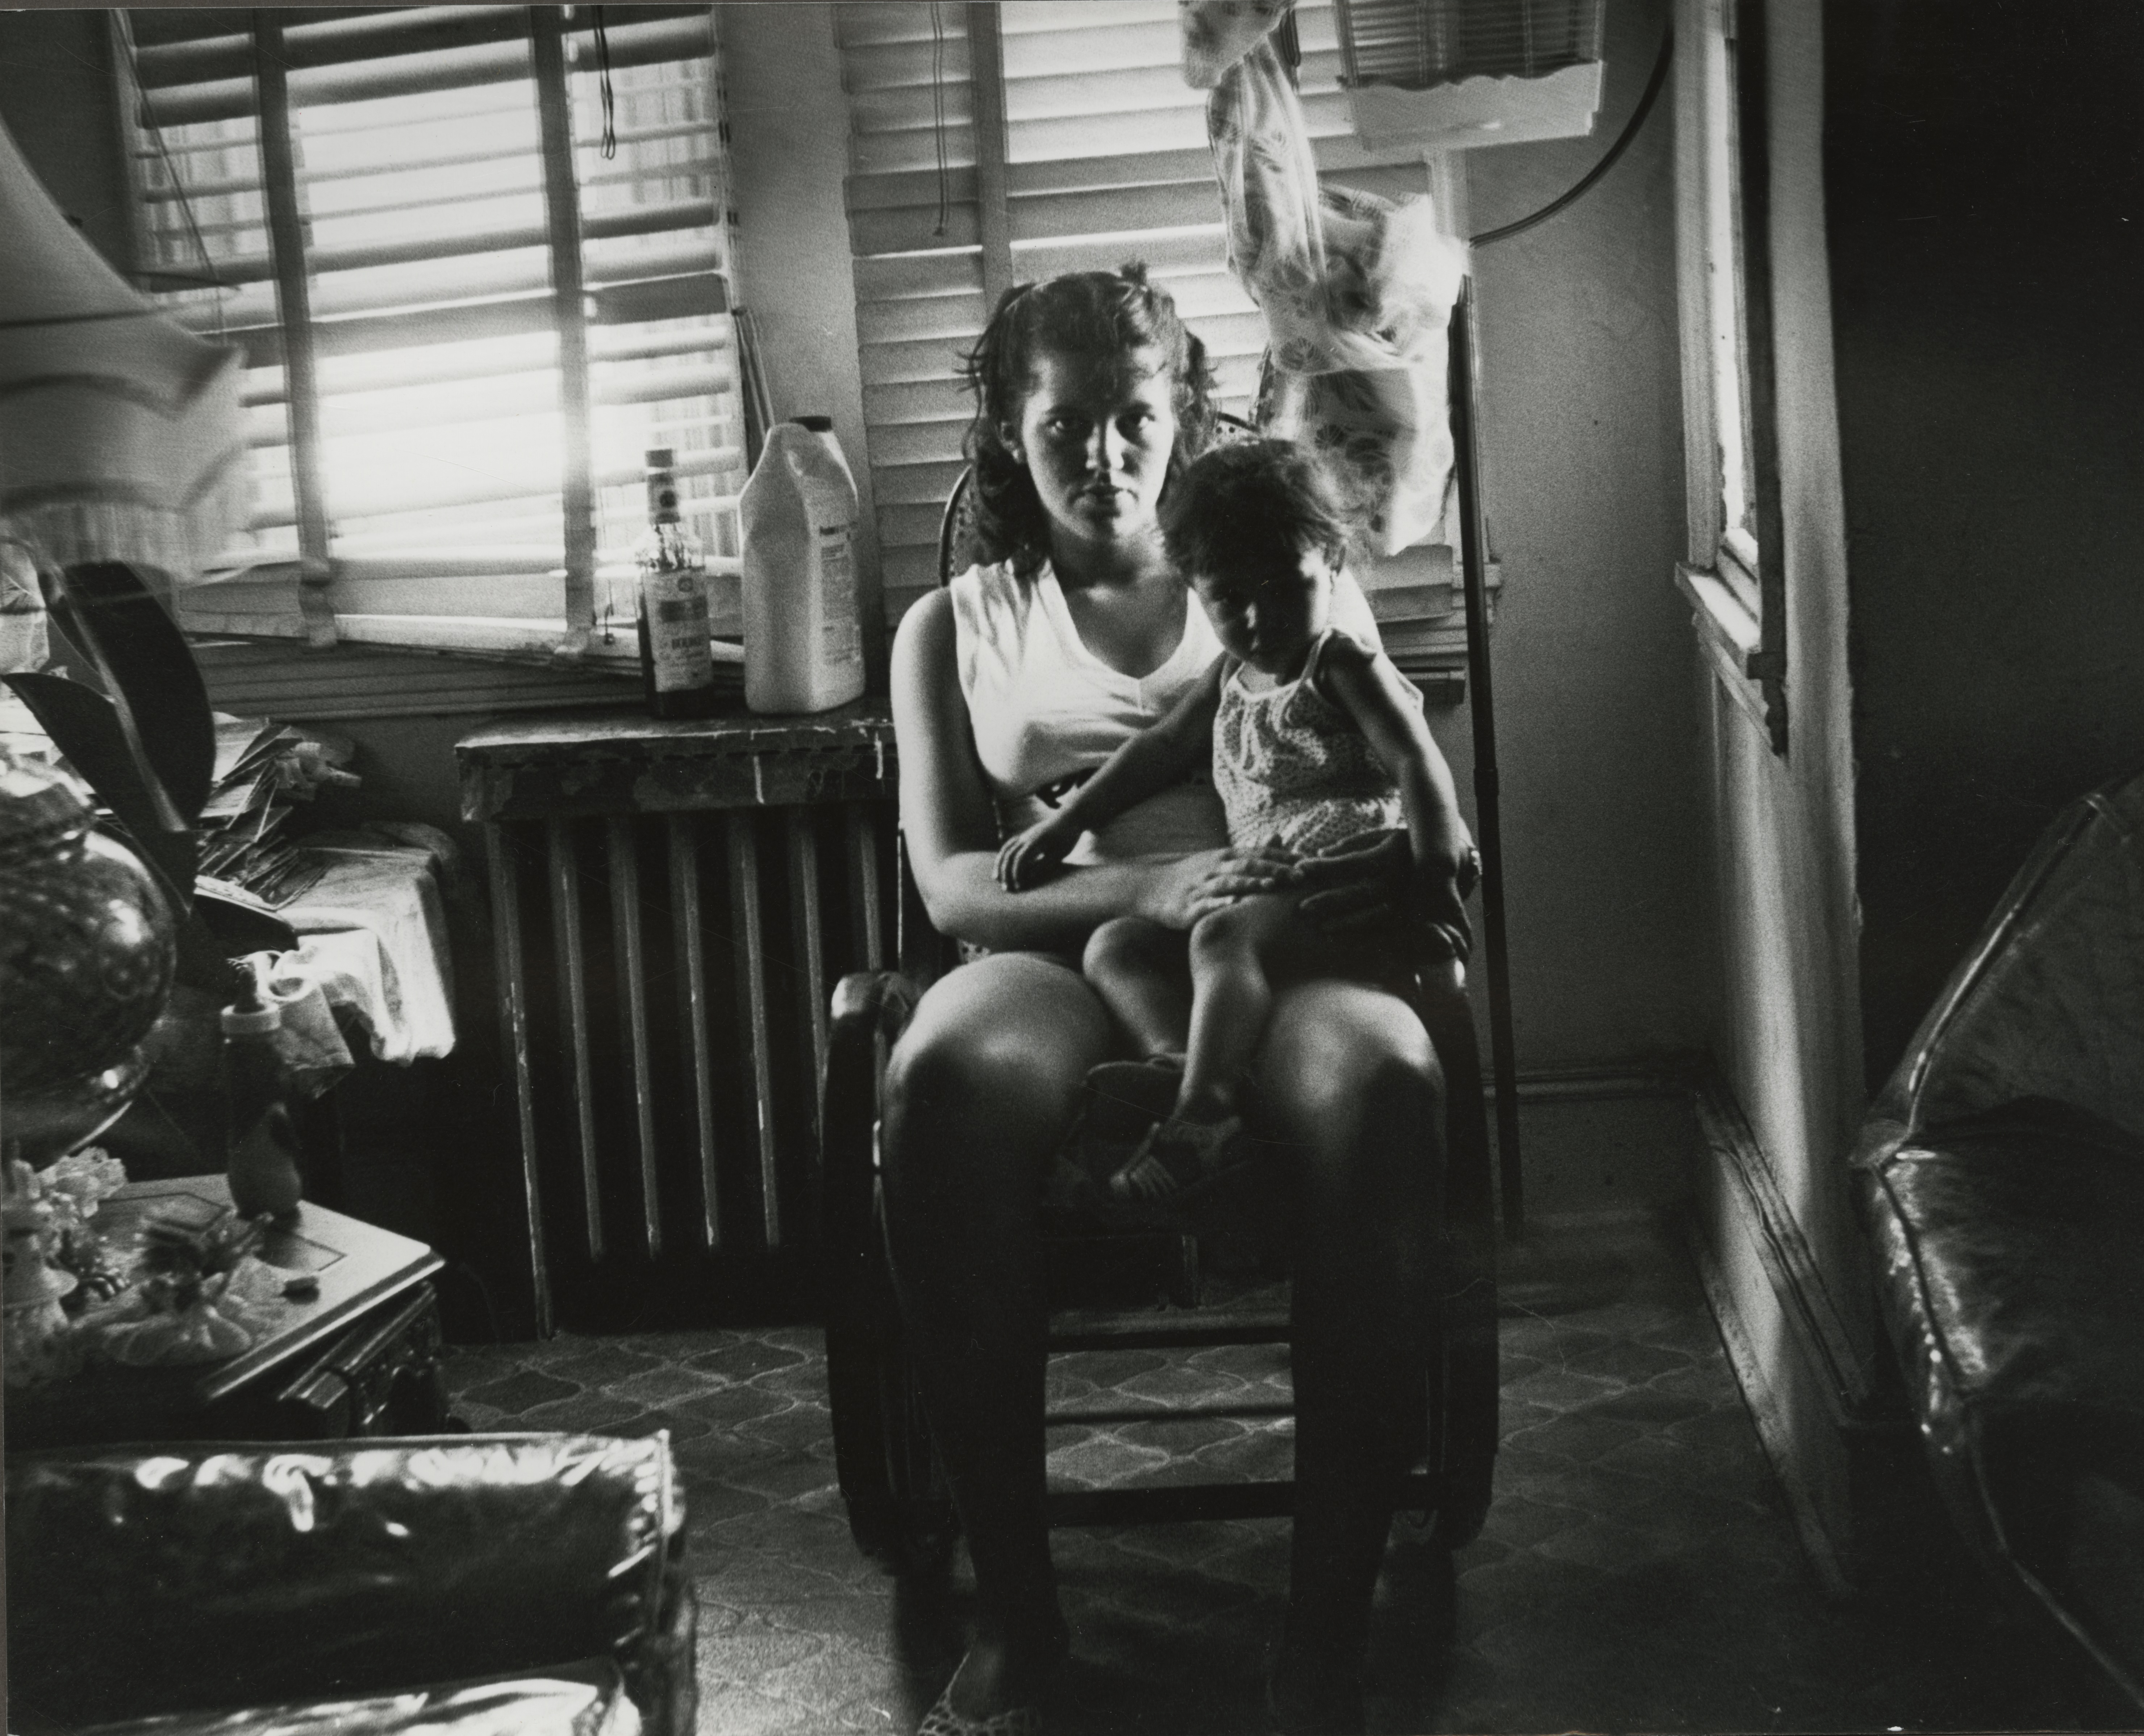 Puerto Rican mother and child suffer economically